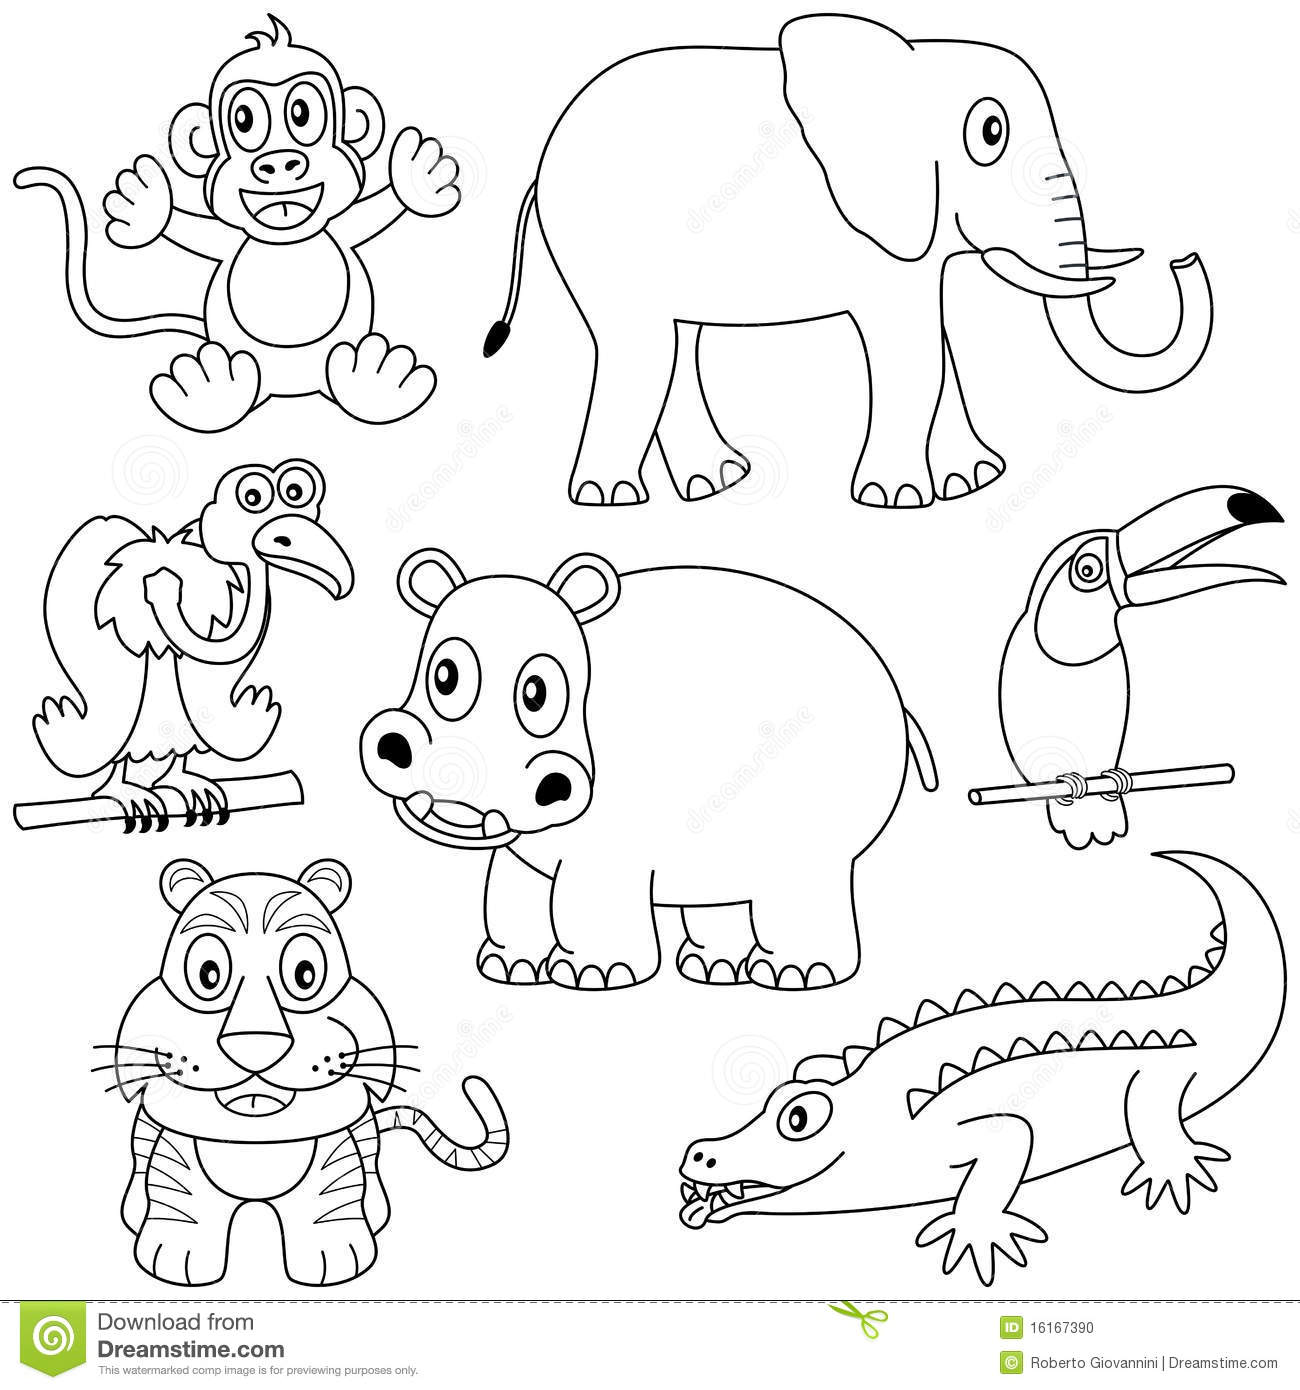 Ausmalbilder Zootiere: Coloring African Animals [2] Stock Vector